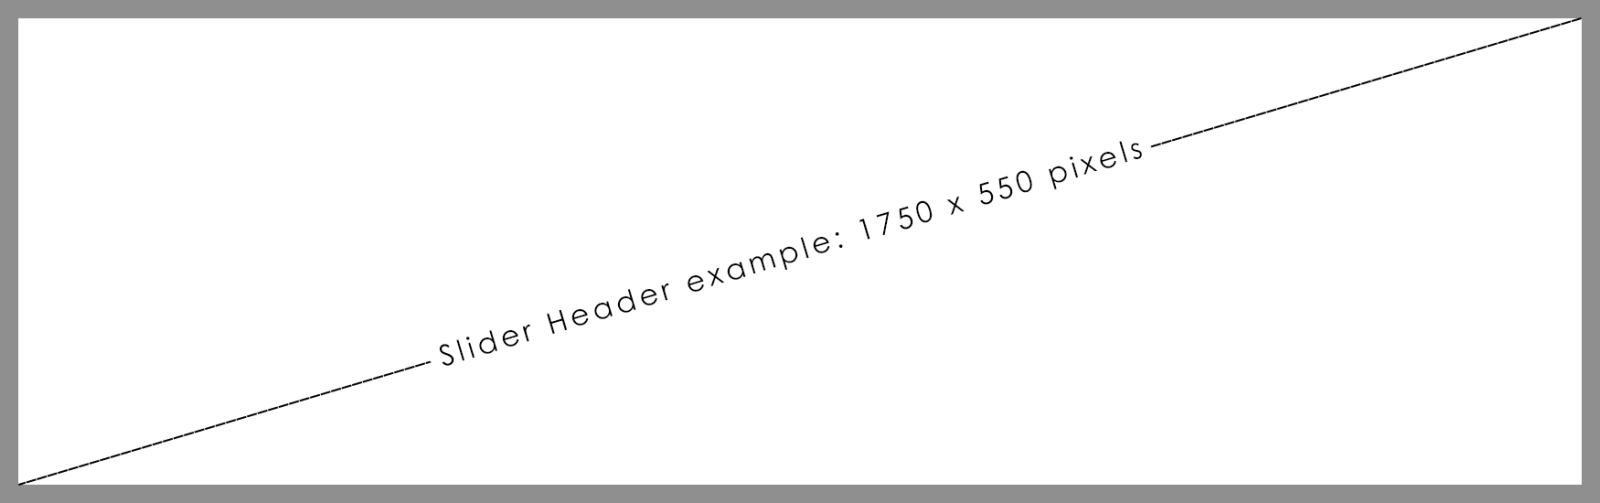 Example image showing the size of the slider header advert with sizing: 1750 x 550 pixels